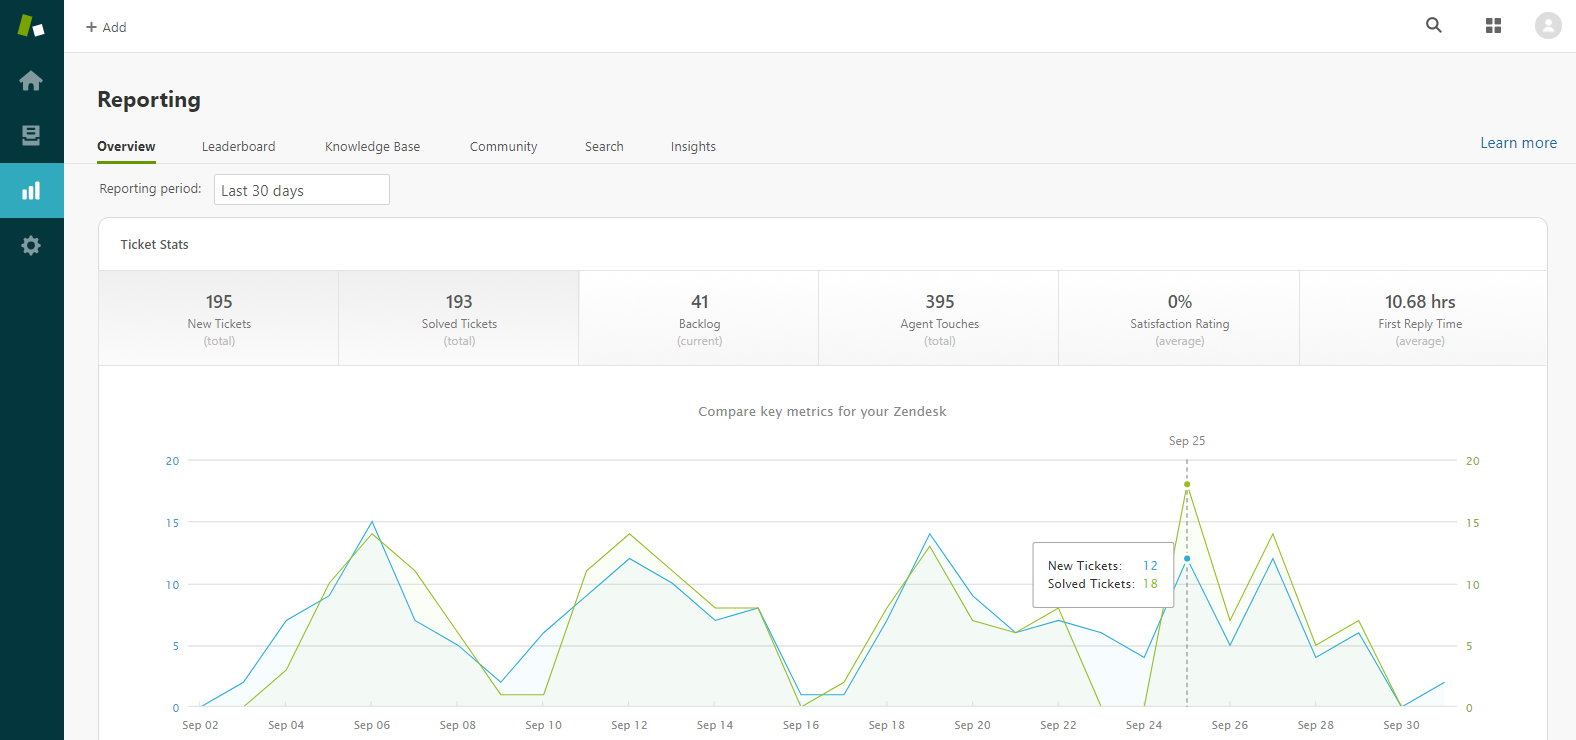 Zendesk Reporting Overview Dashboard